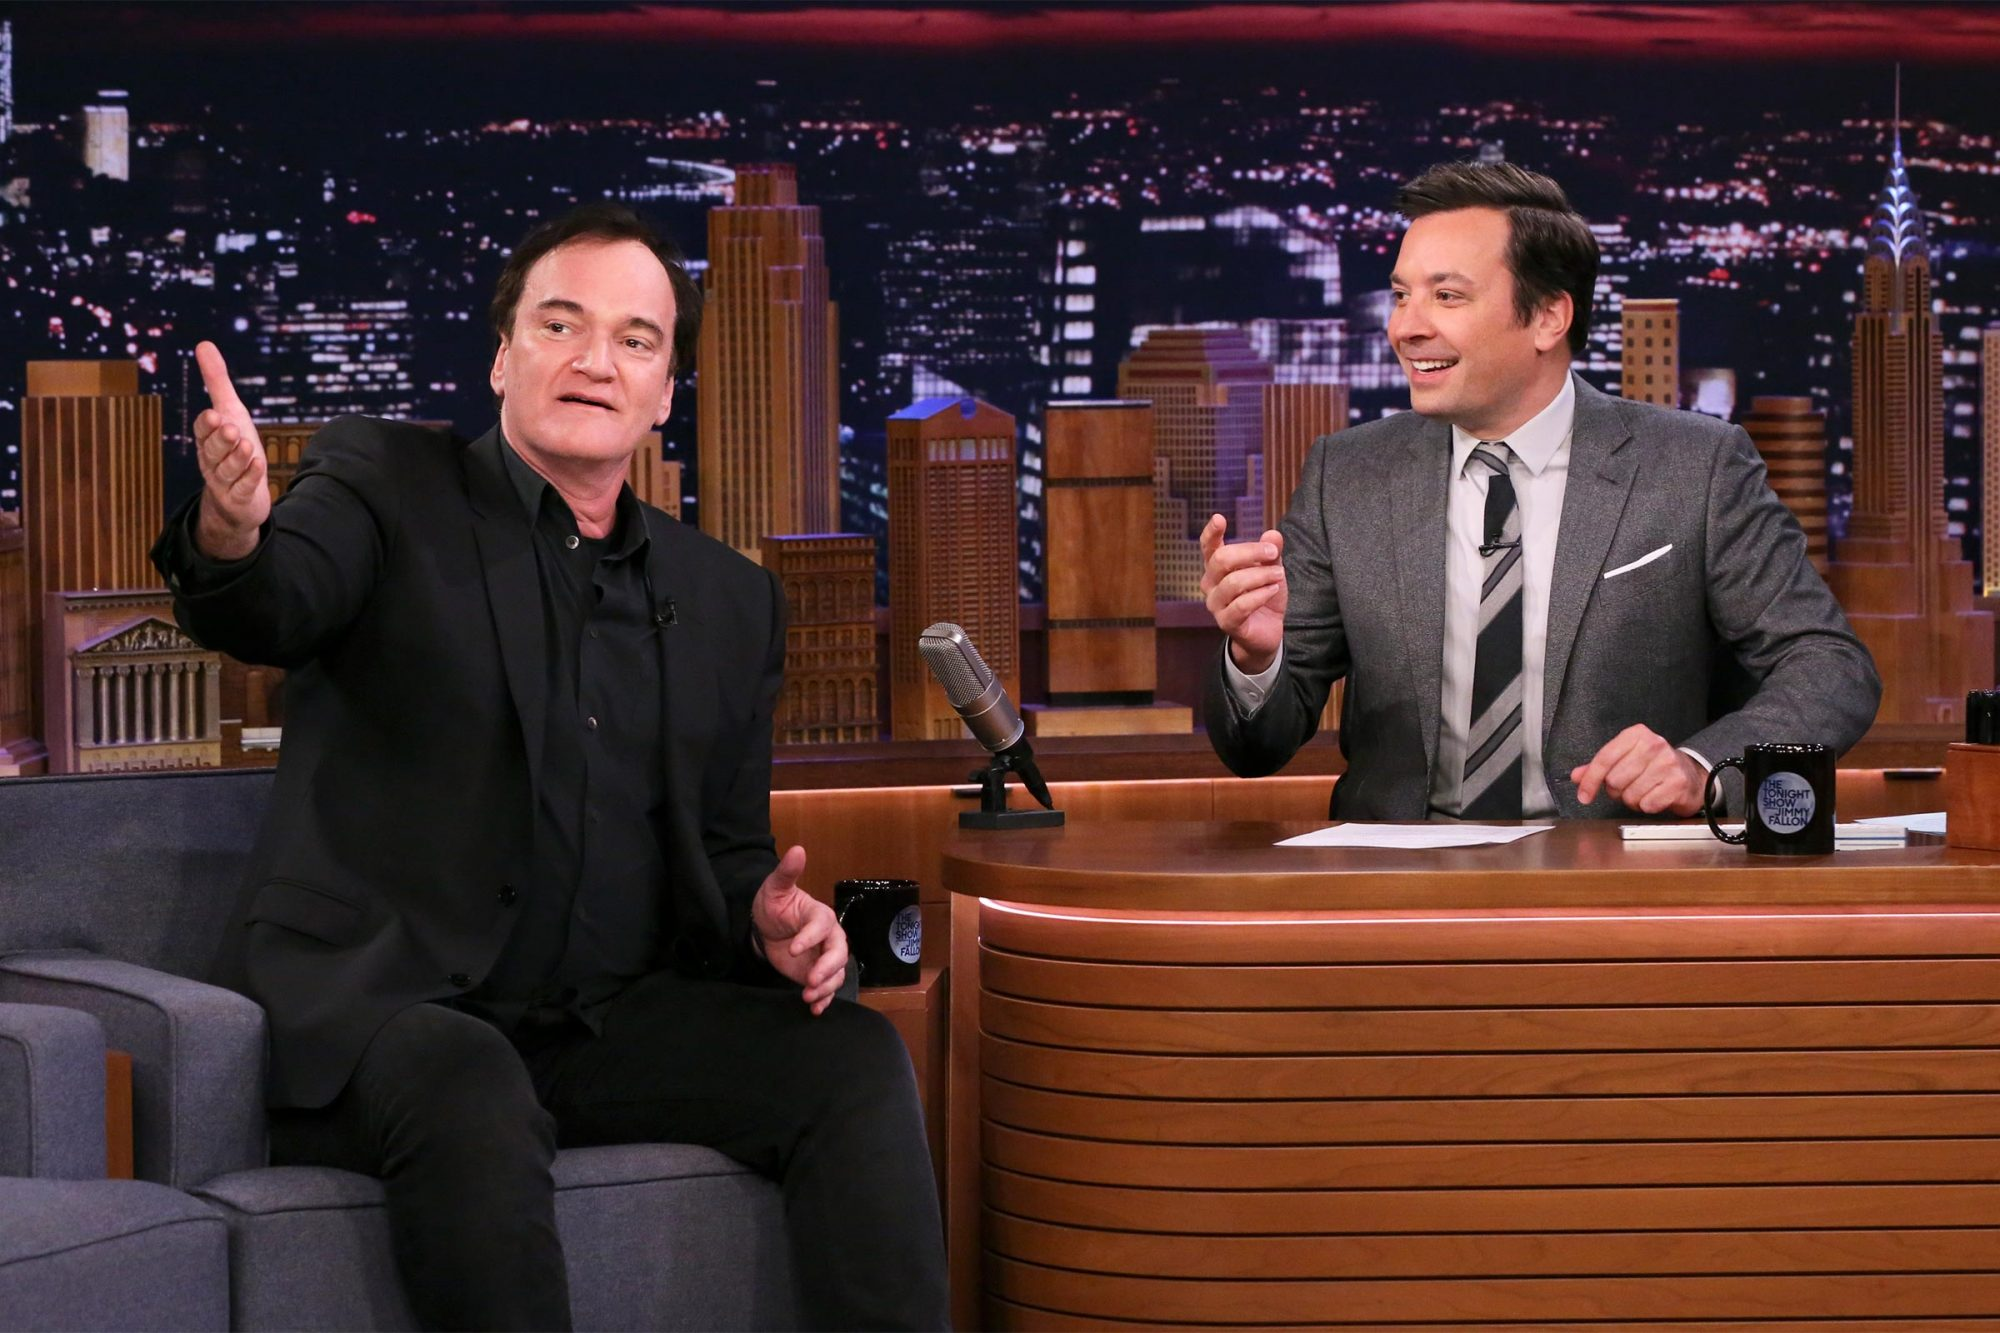 Quentin Tarantino and Jimmy Fallon